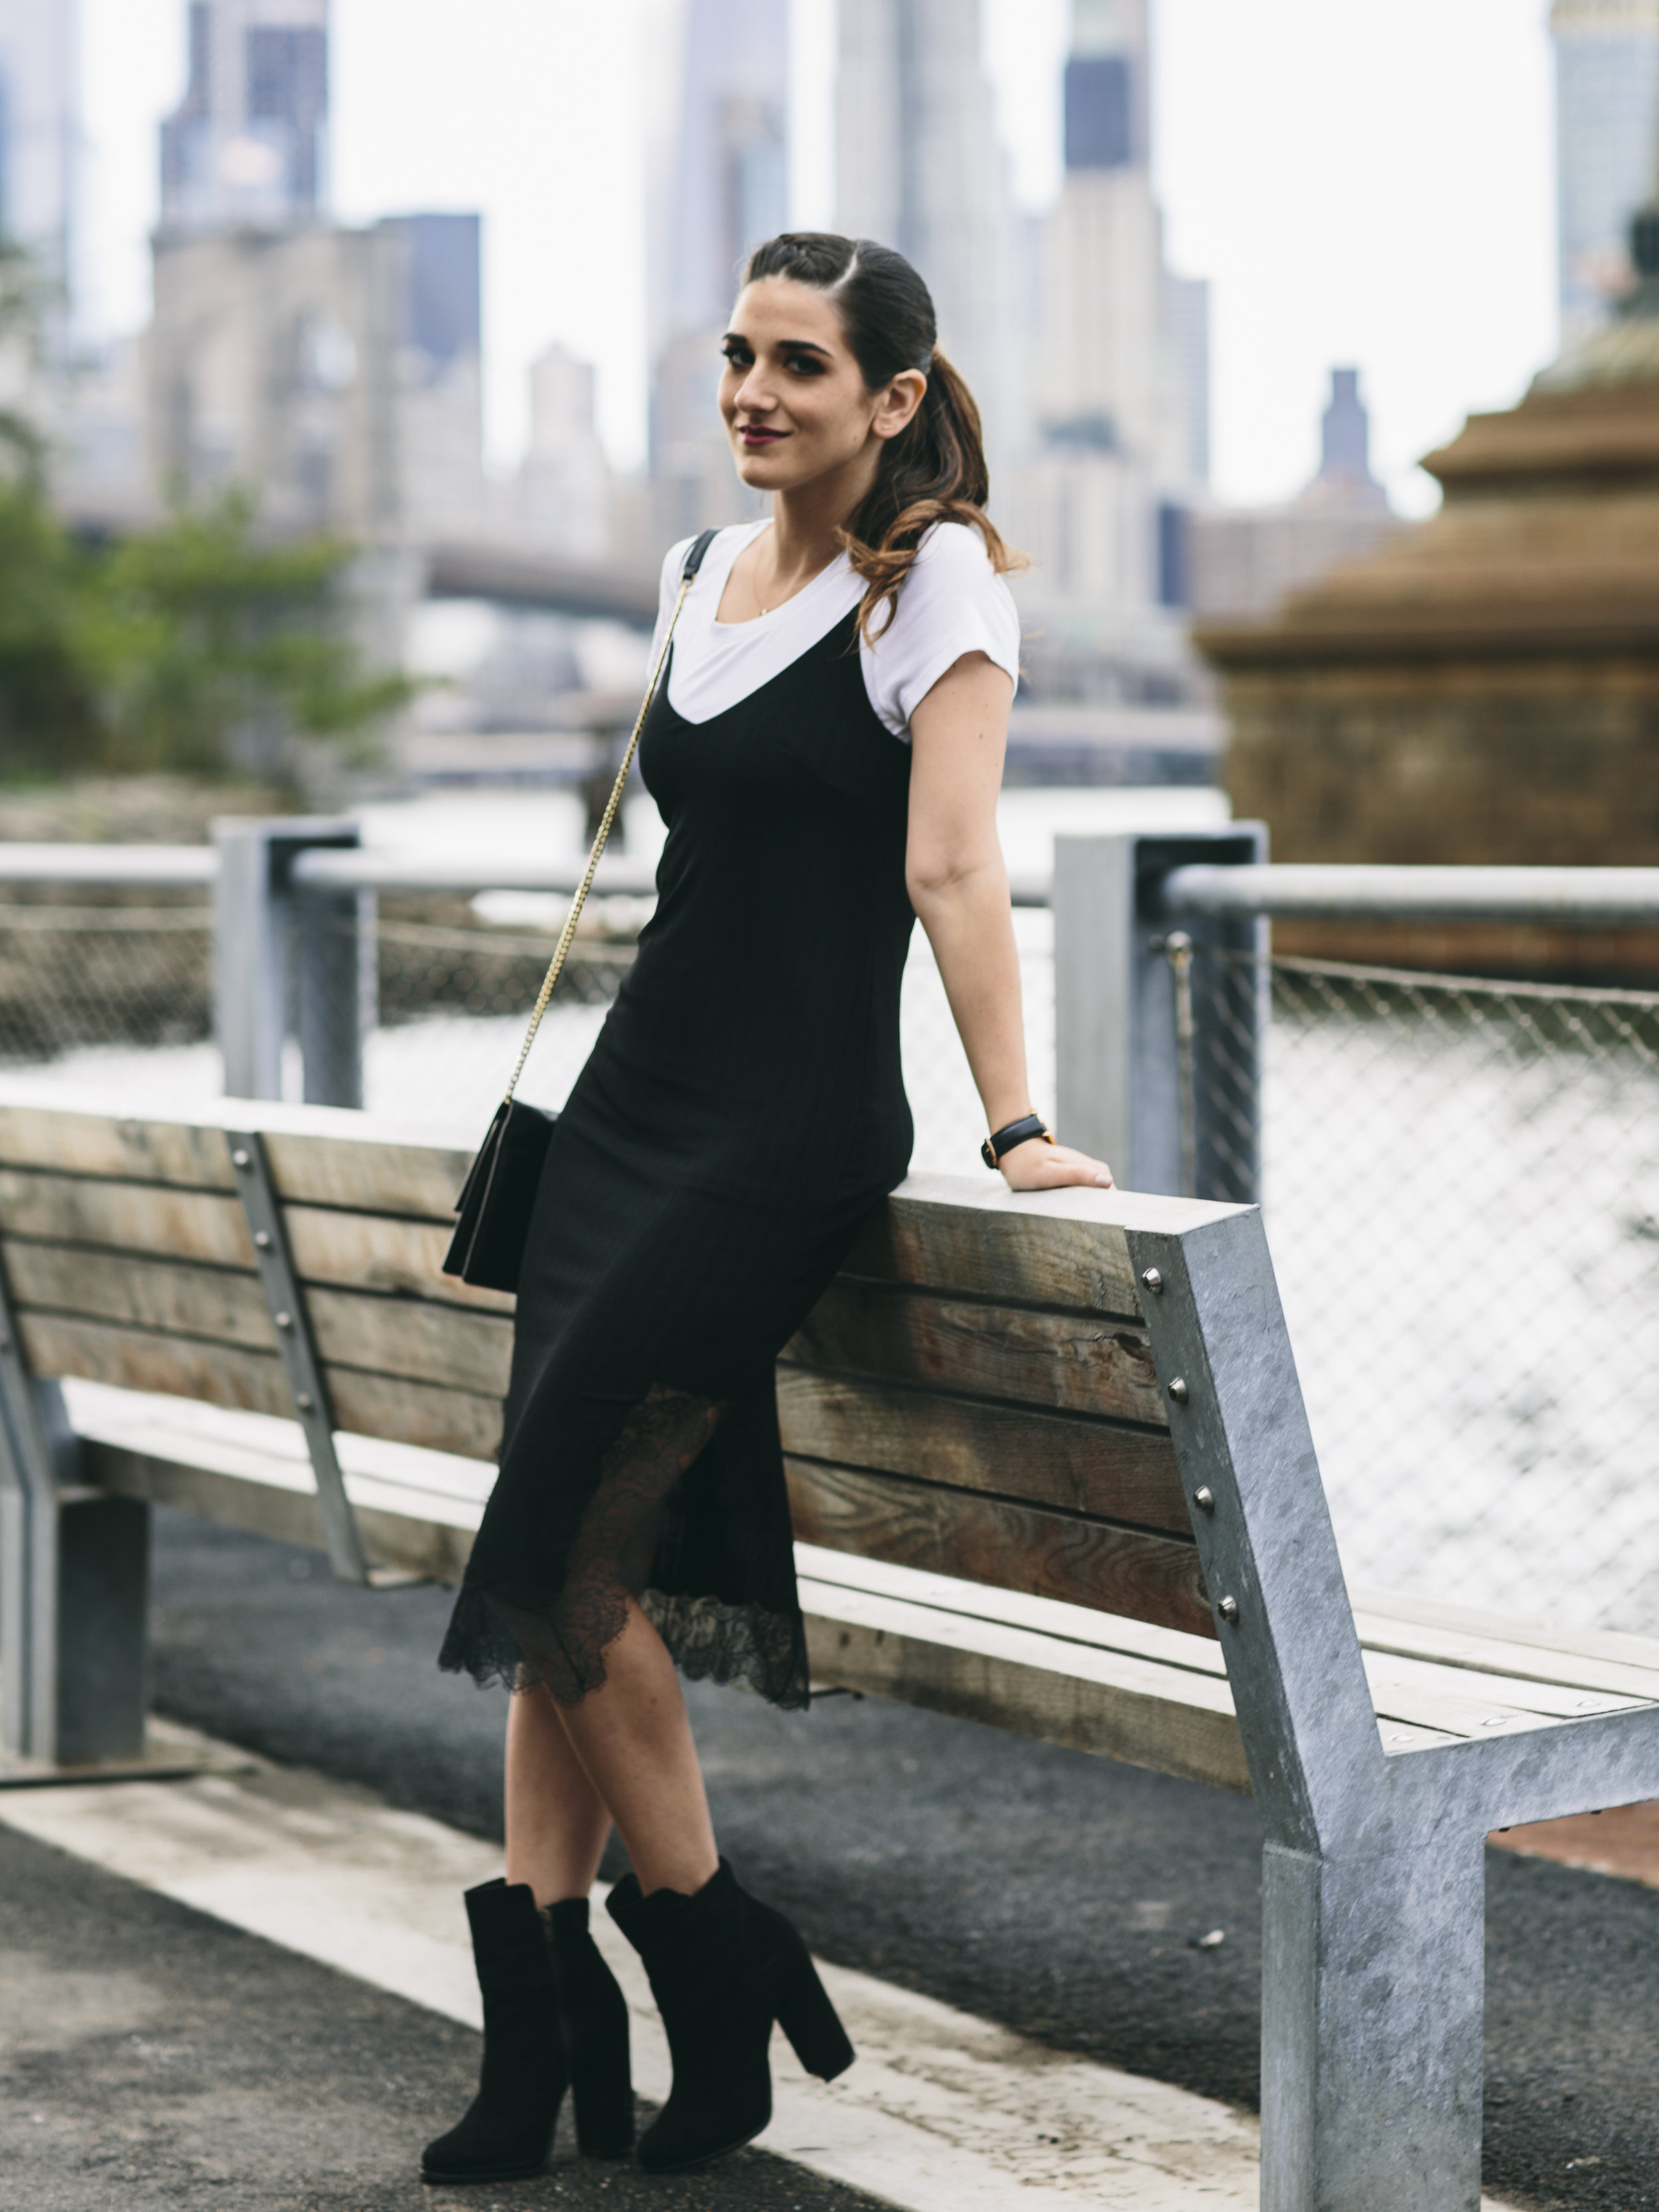 Black Lace Slip Dress Over White Tee Louboutins & Love Fashion Blog Esther Santer NYC Street Style Blogger Outfit OOTD Trendy Booties M4D3 Online Shopping Girl Women Fall Look Ivanka Trump Cocktail Bag Watch Wear Hair Inspo Ponytail Edgy Fashionista.jpg